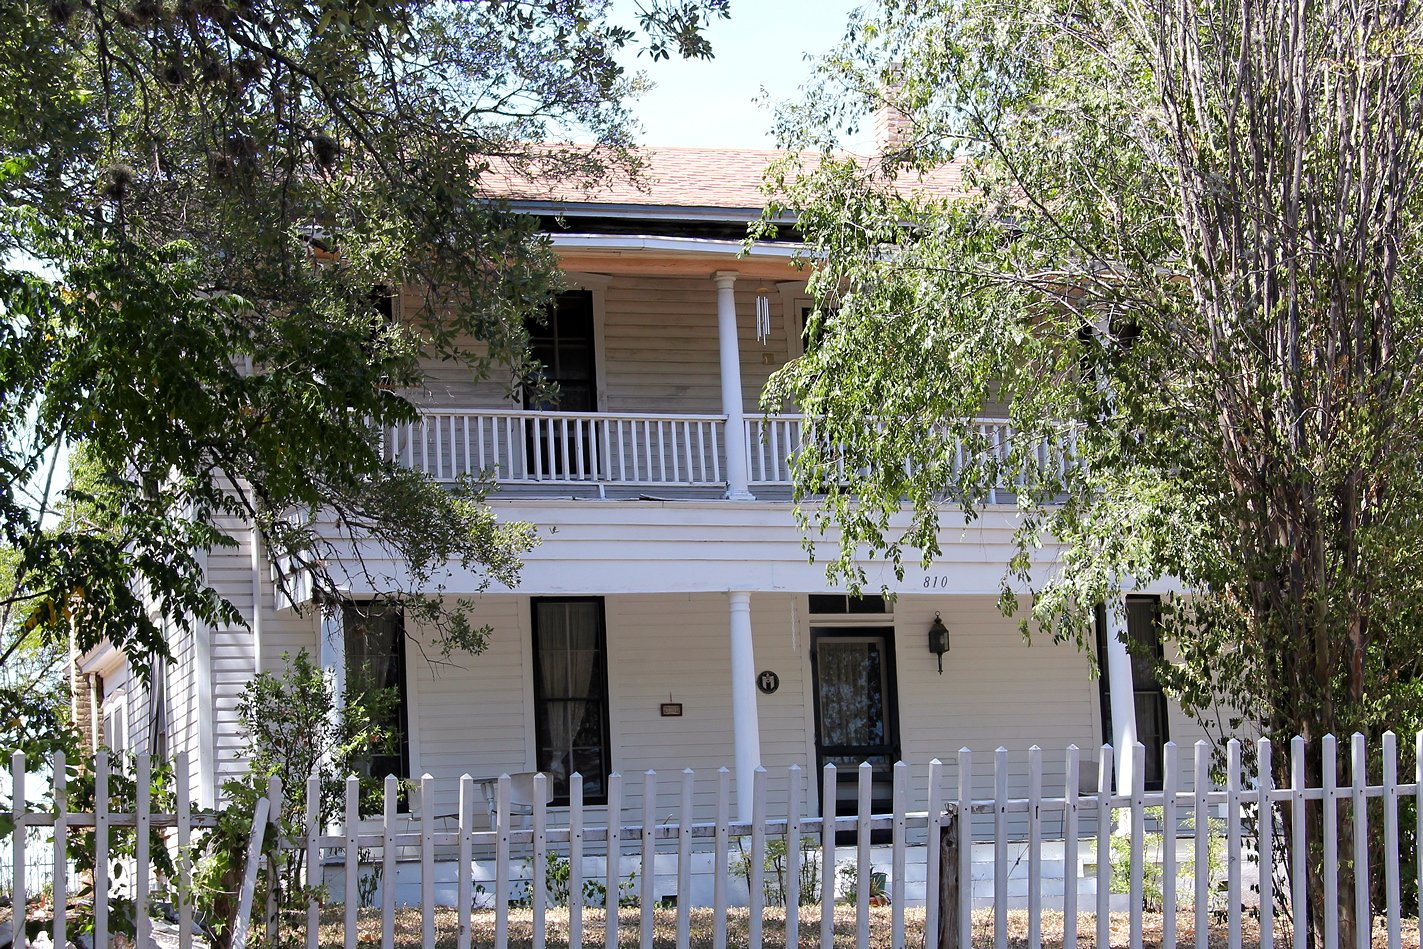 Limerick-Frazier House, built in 1876, Austin, Texas.